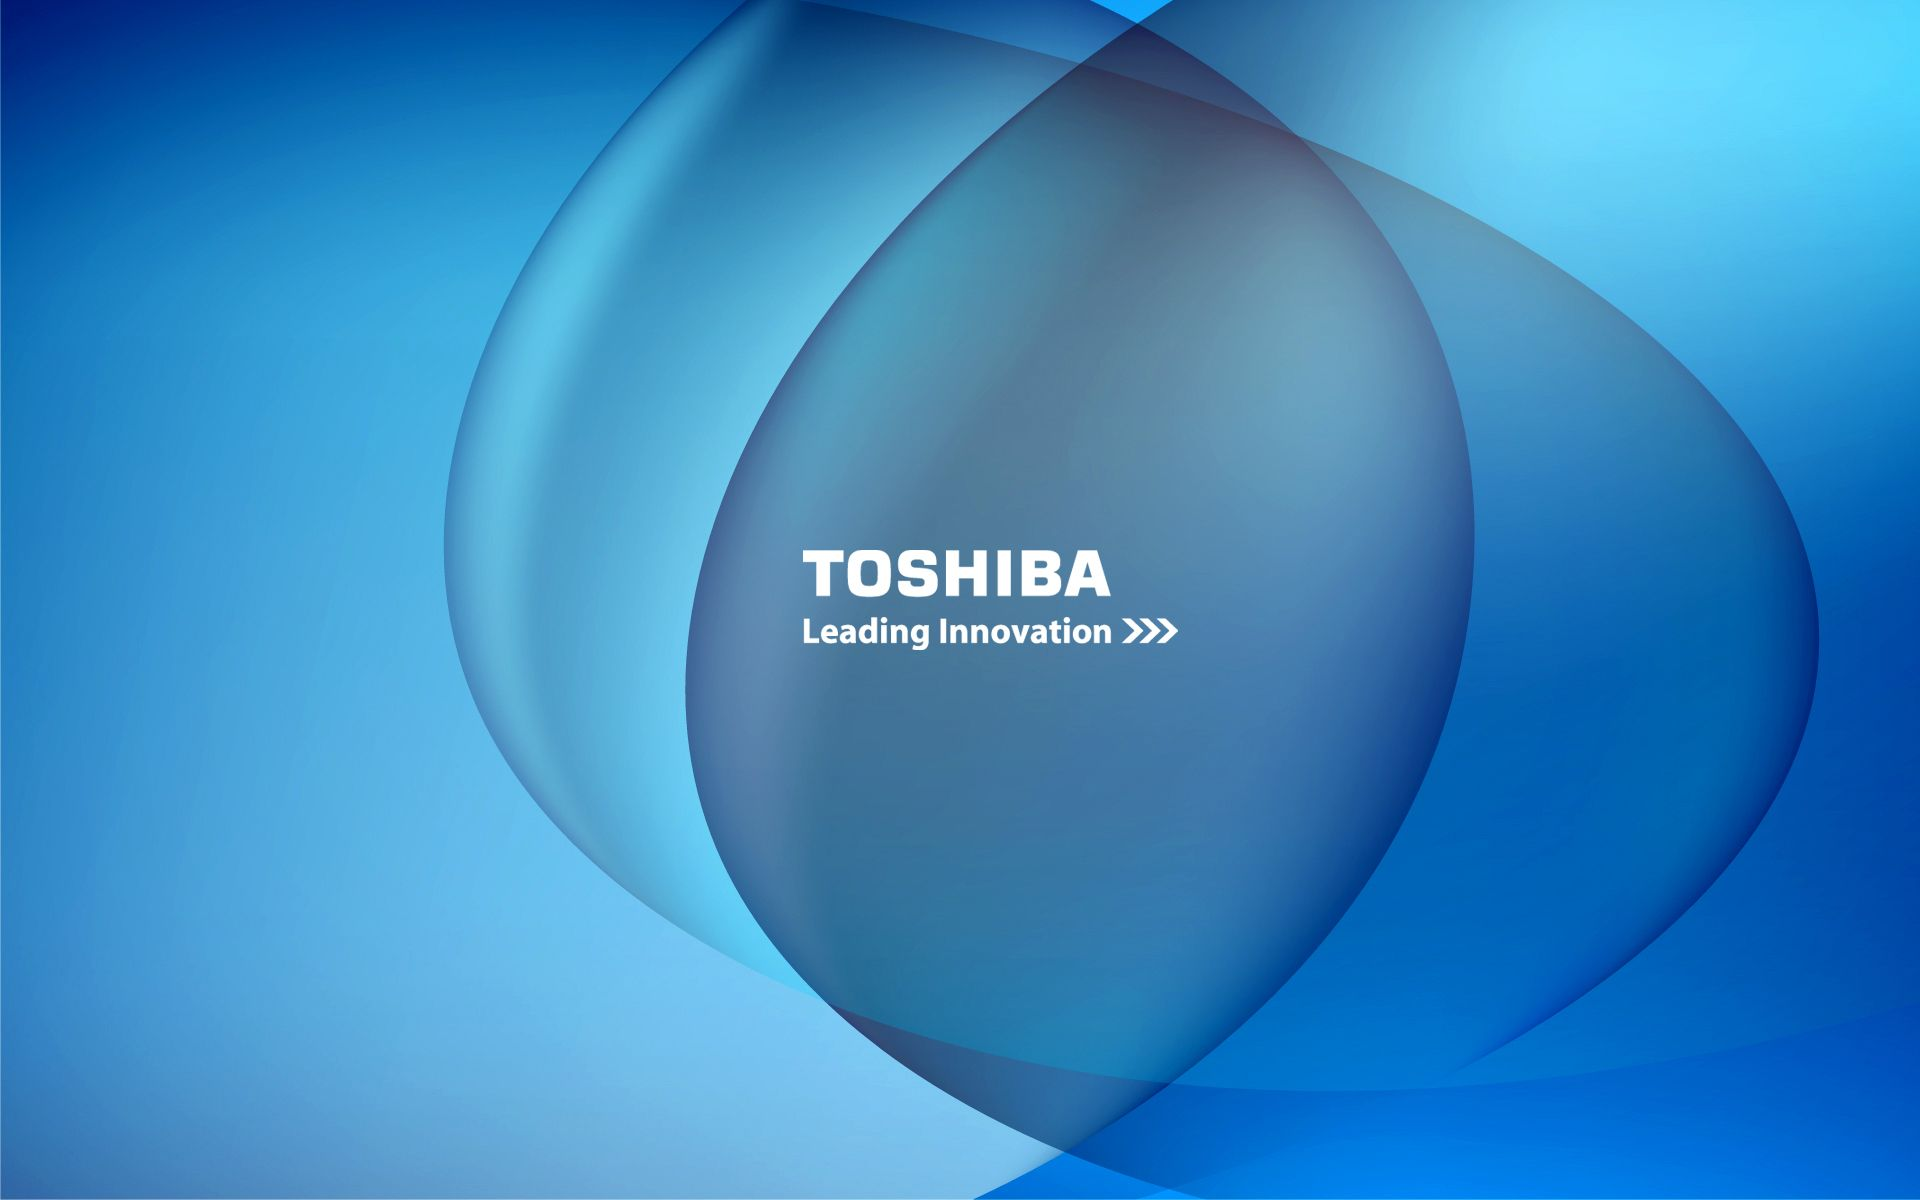 Toshiba Hd Widescreen Background Ideas For The House